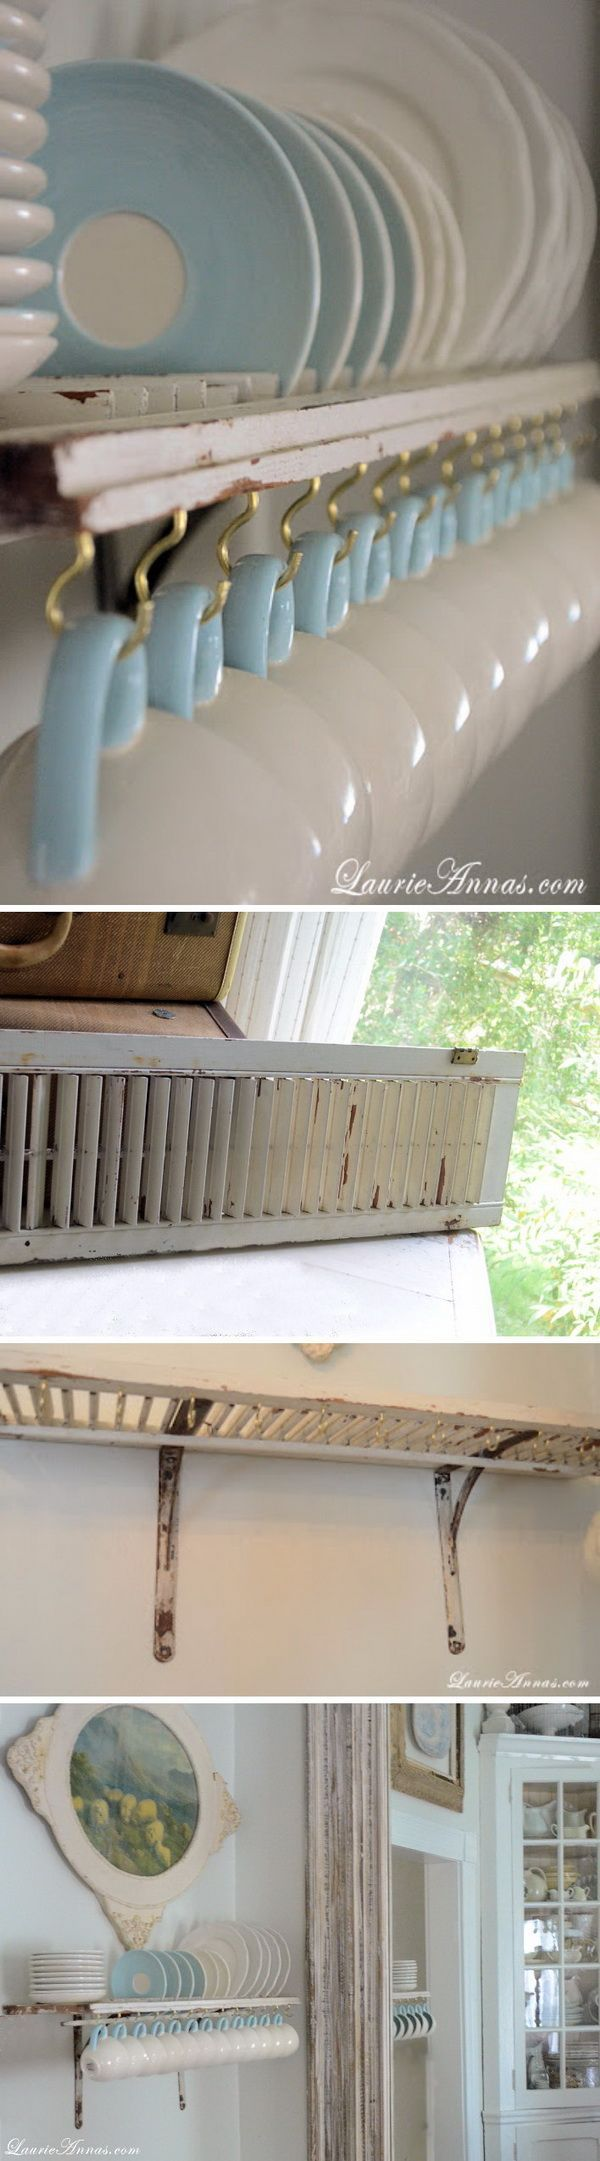 best 25+ old shutters decor ideas on pinterest | shutter decor